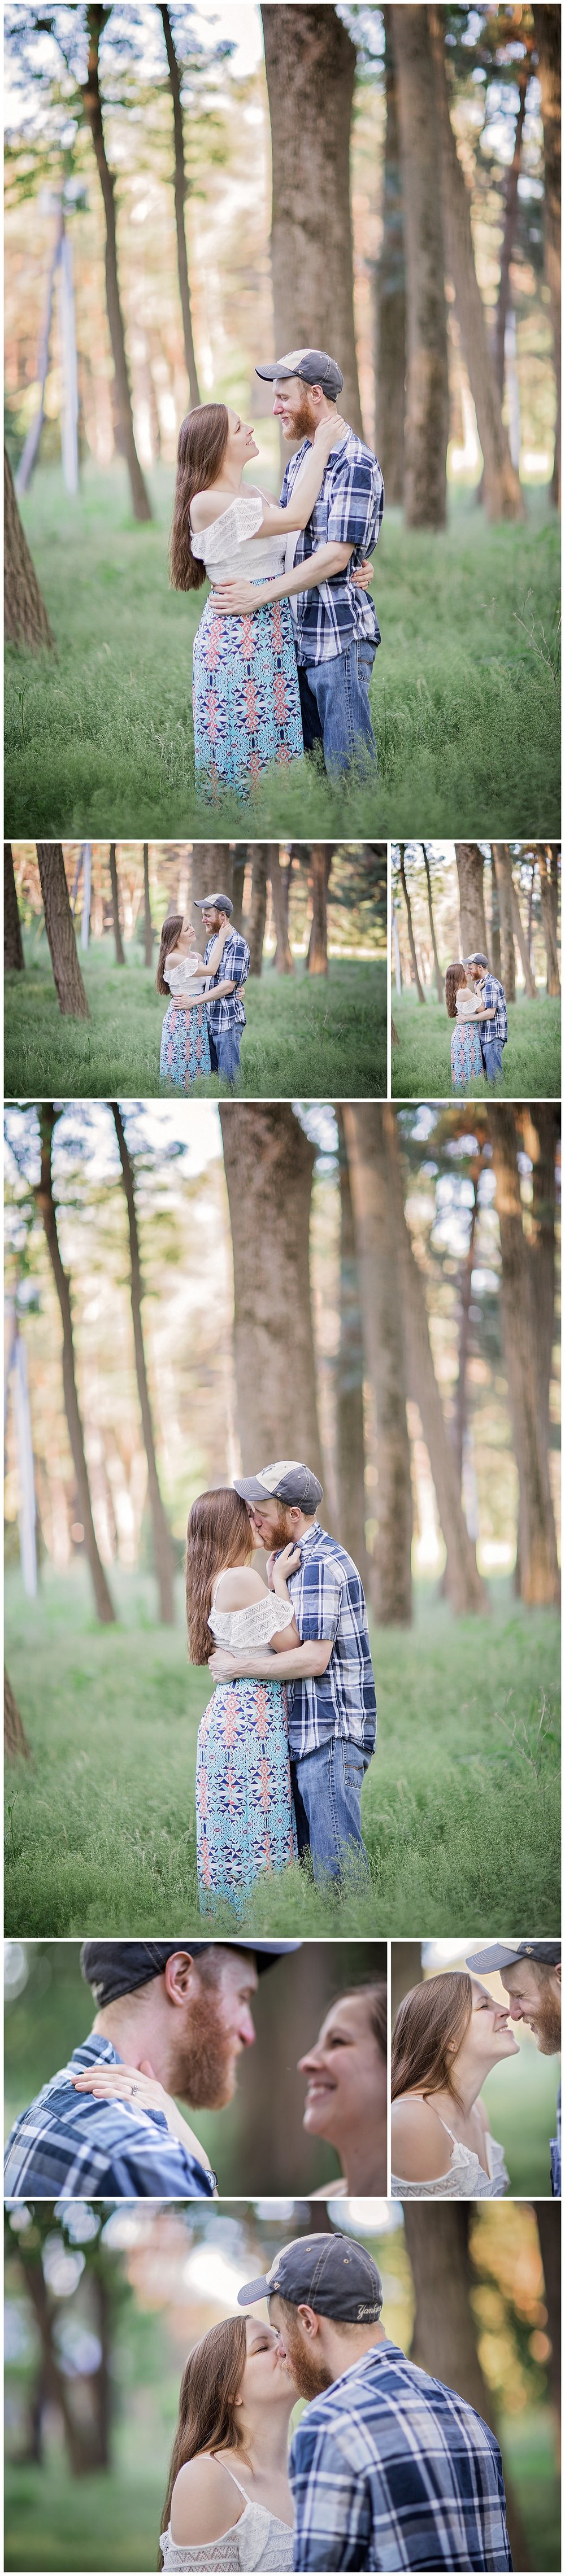 M & B - Letchworth state park - Lass & Beau-151_Buffalo wedding photography.jpg